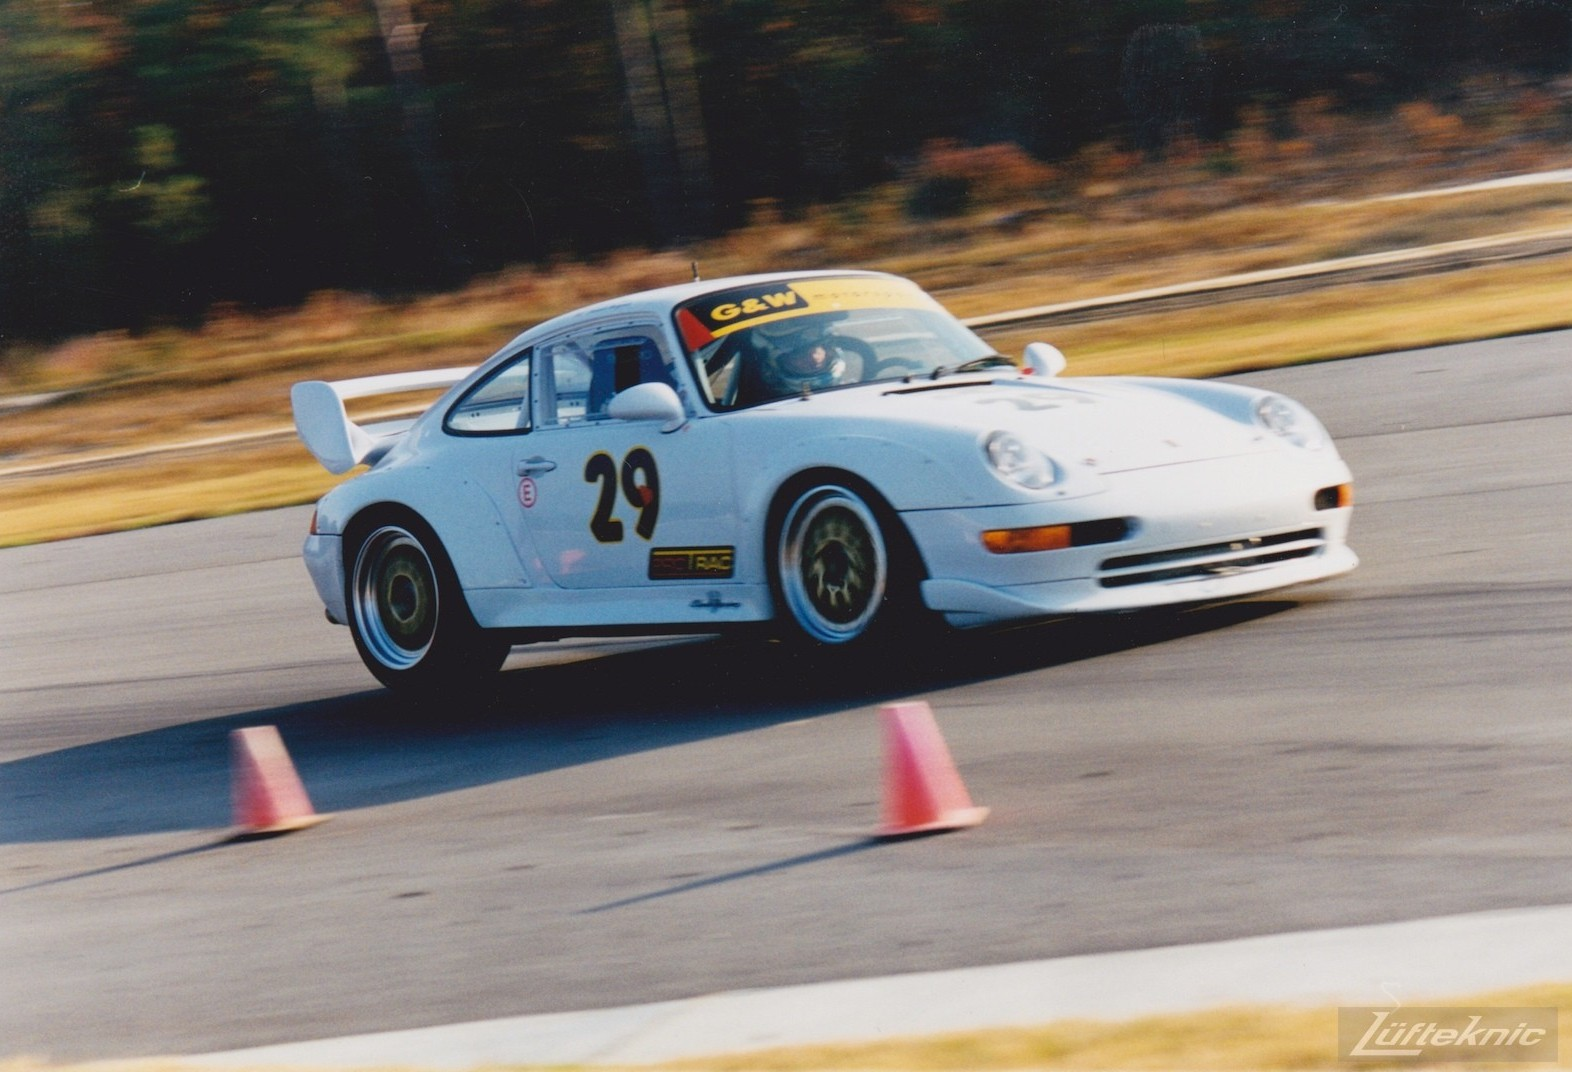 Last aircooled RSR G&W Motorsports